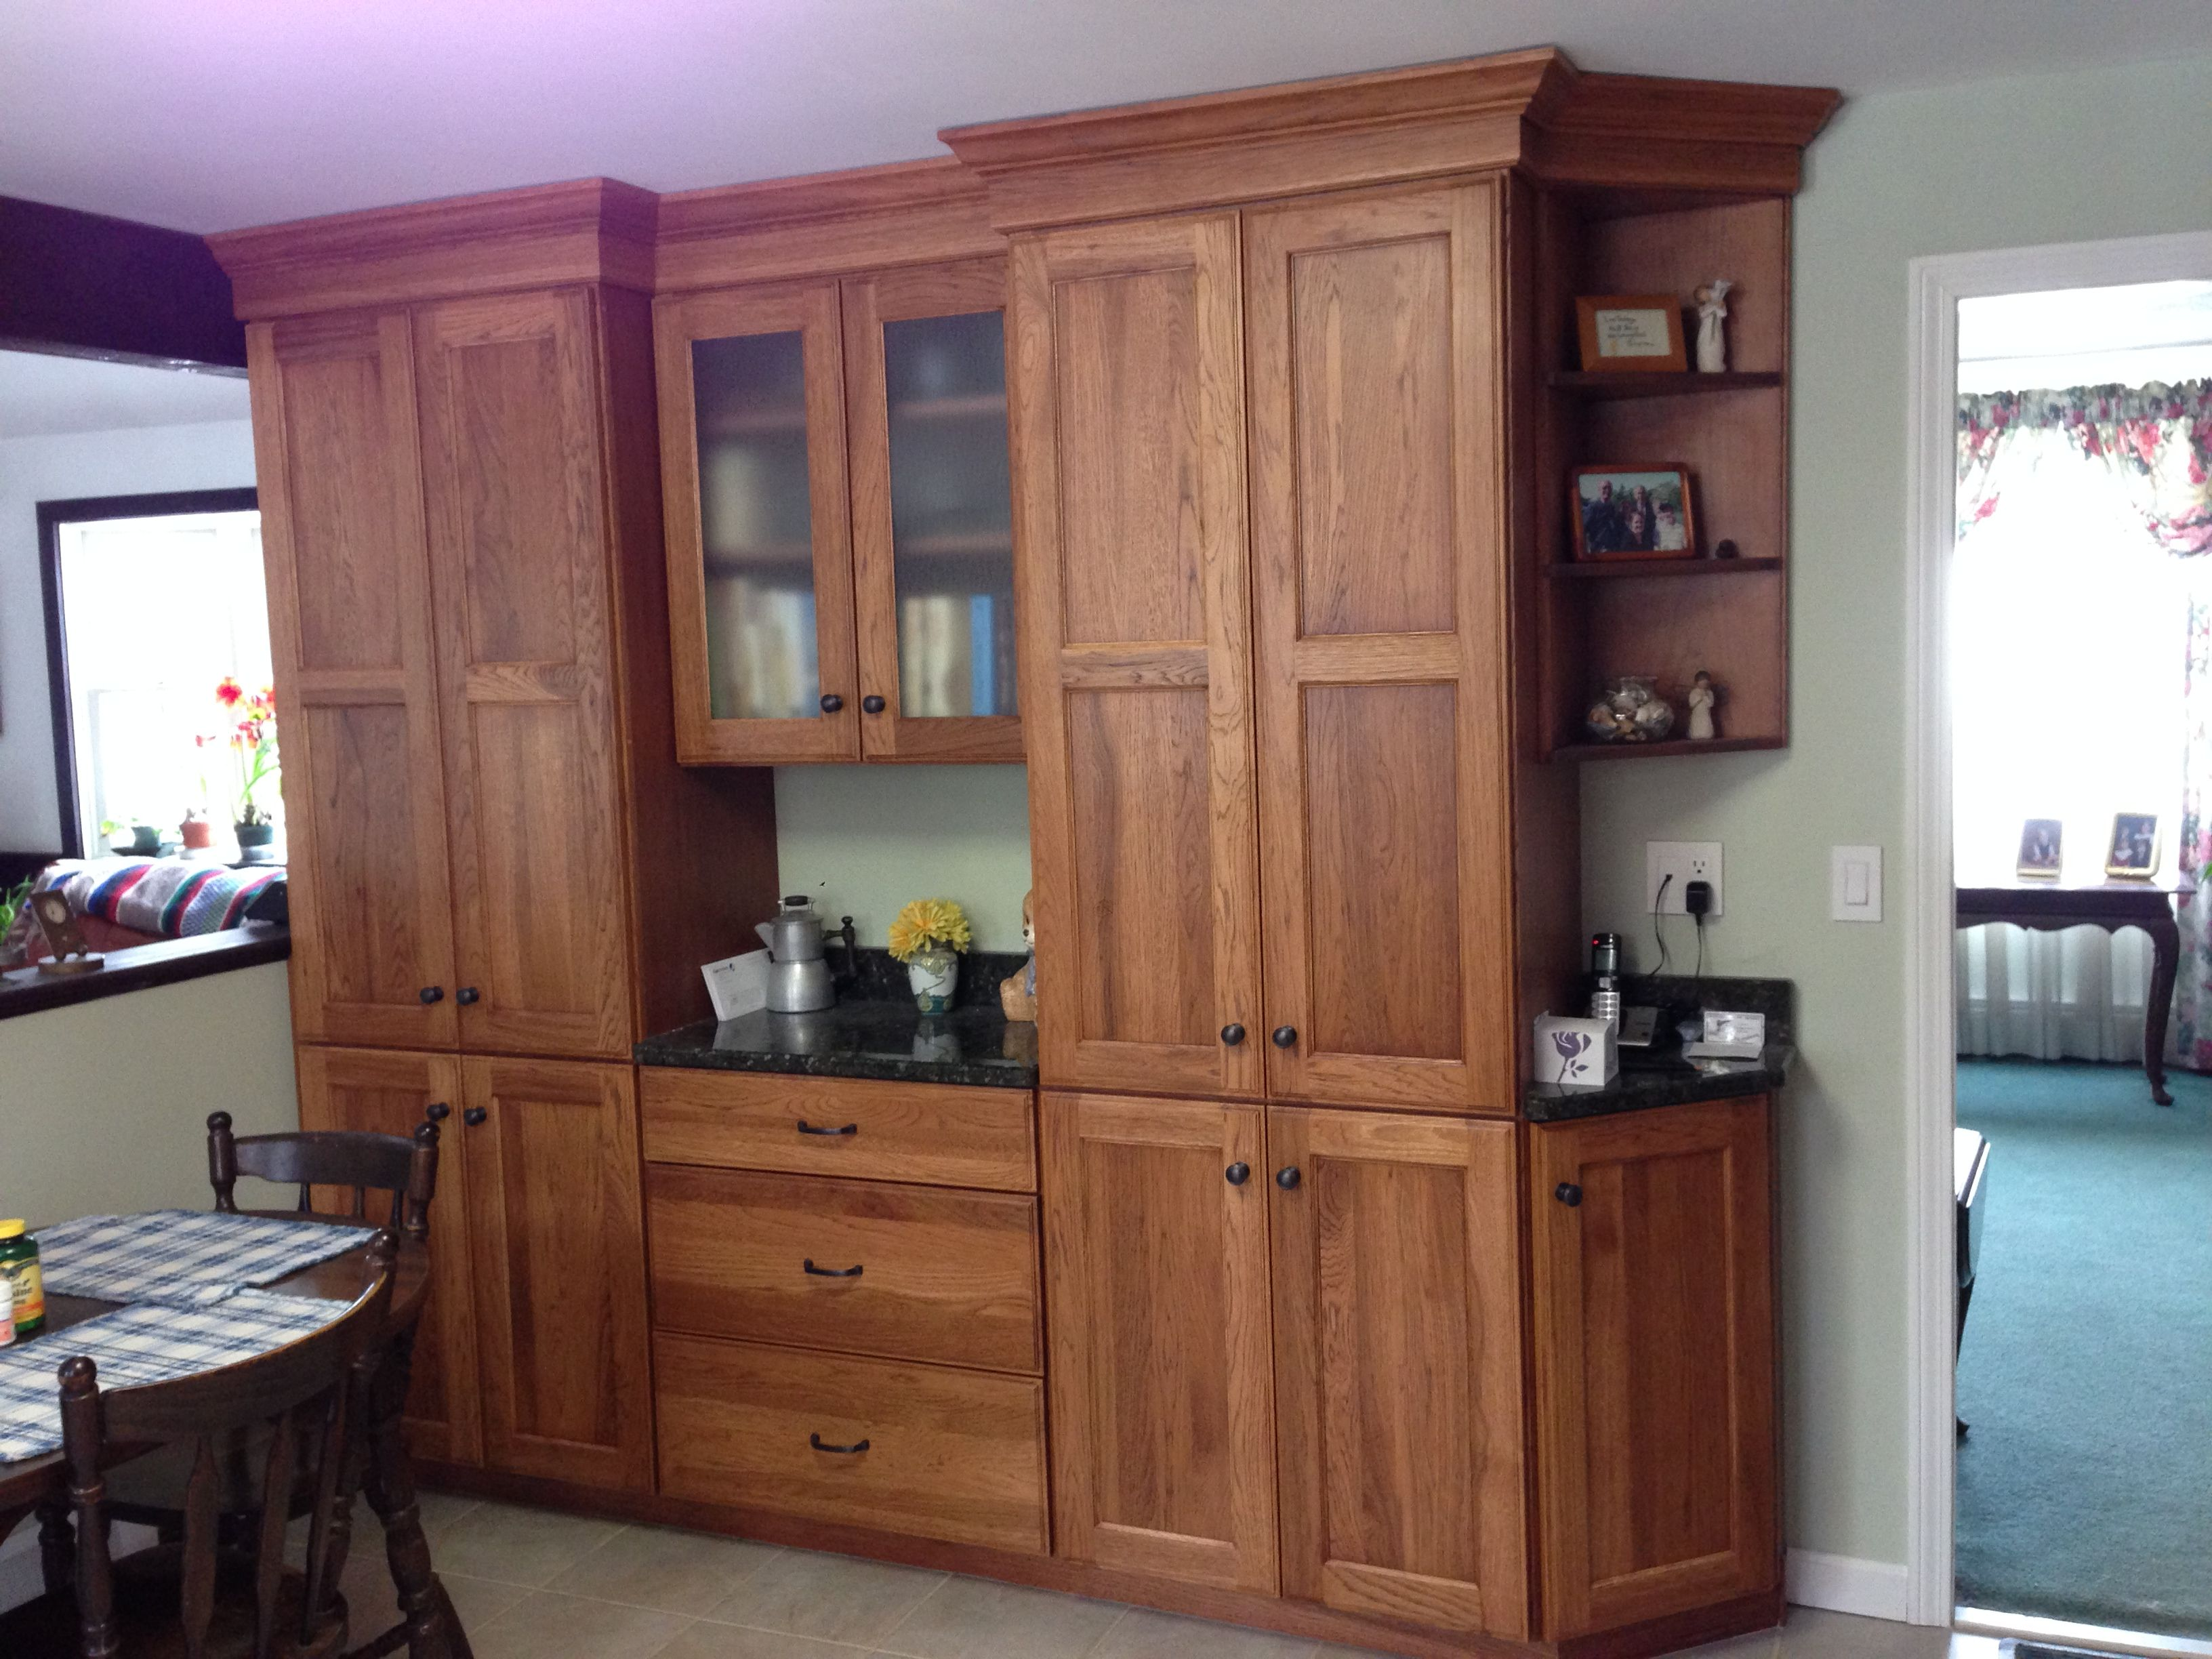 Dynasty By Omega Pecan Wood From Ragonese Kitchen And Bath Kitchen And Bath Tall Cabinet Storage Home Decor